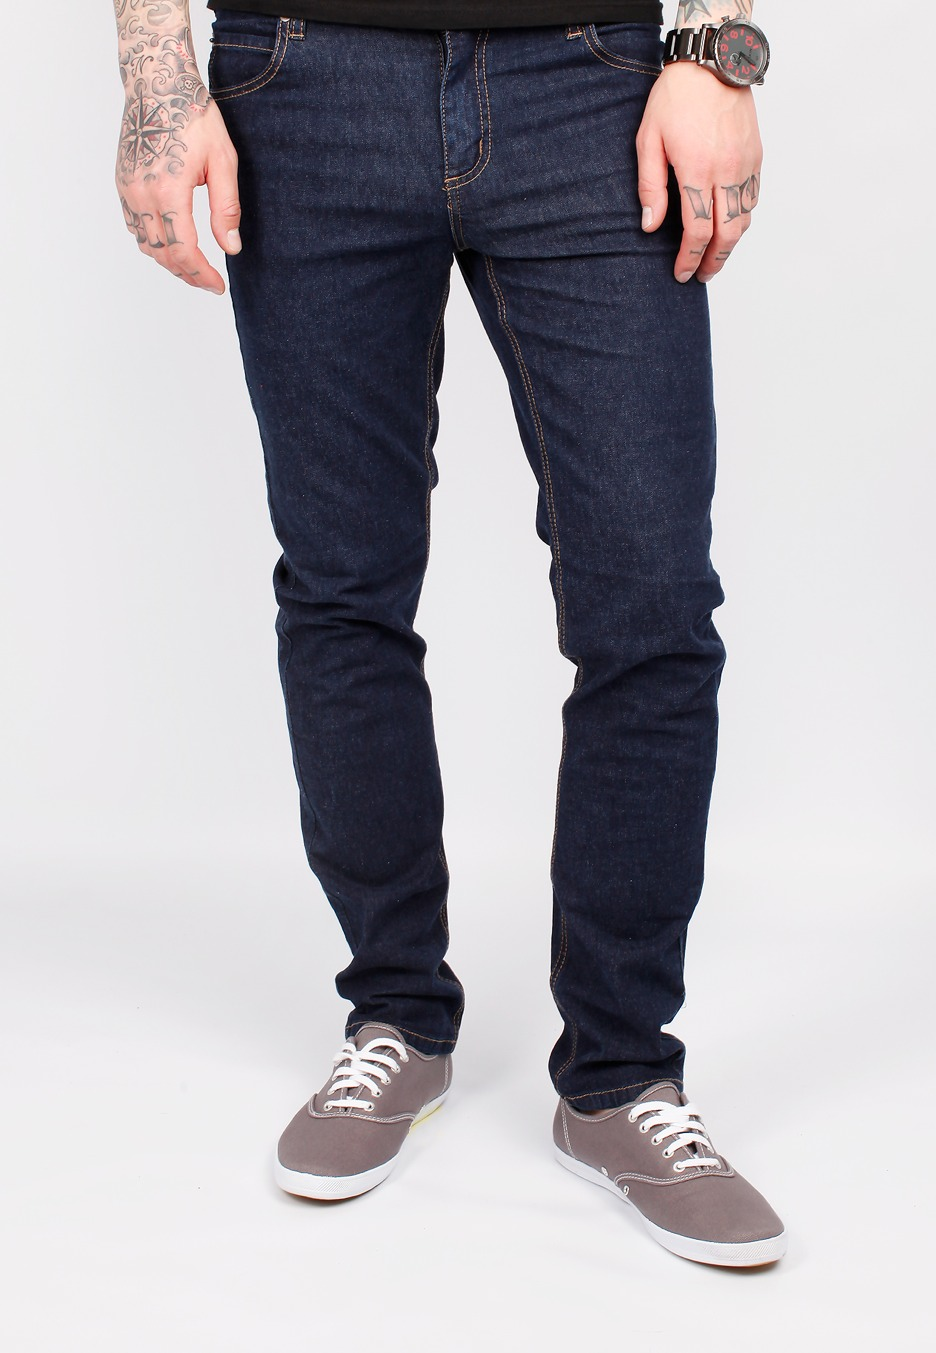 Cheap Monday Jeans Price - Jeans Am